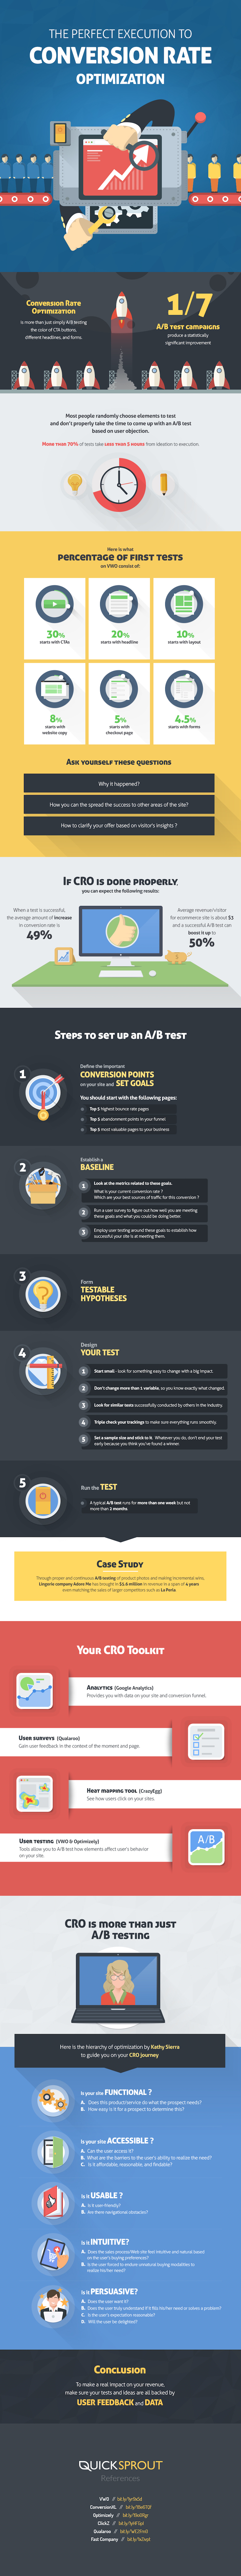 The Perfect Execution of Conversion Rate Optimization Infographic